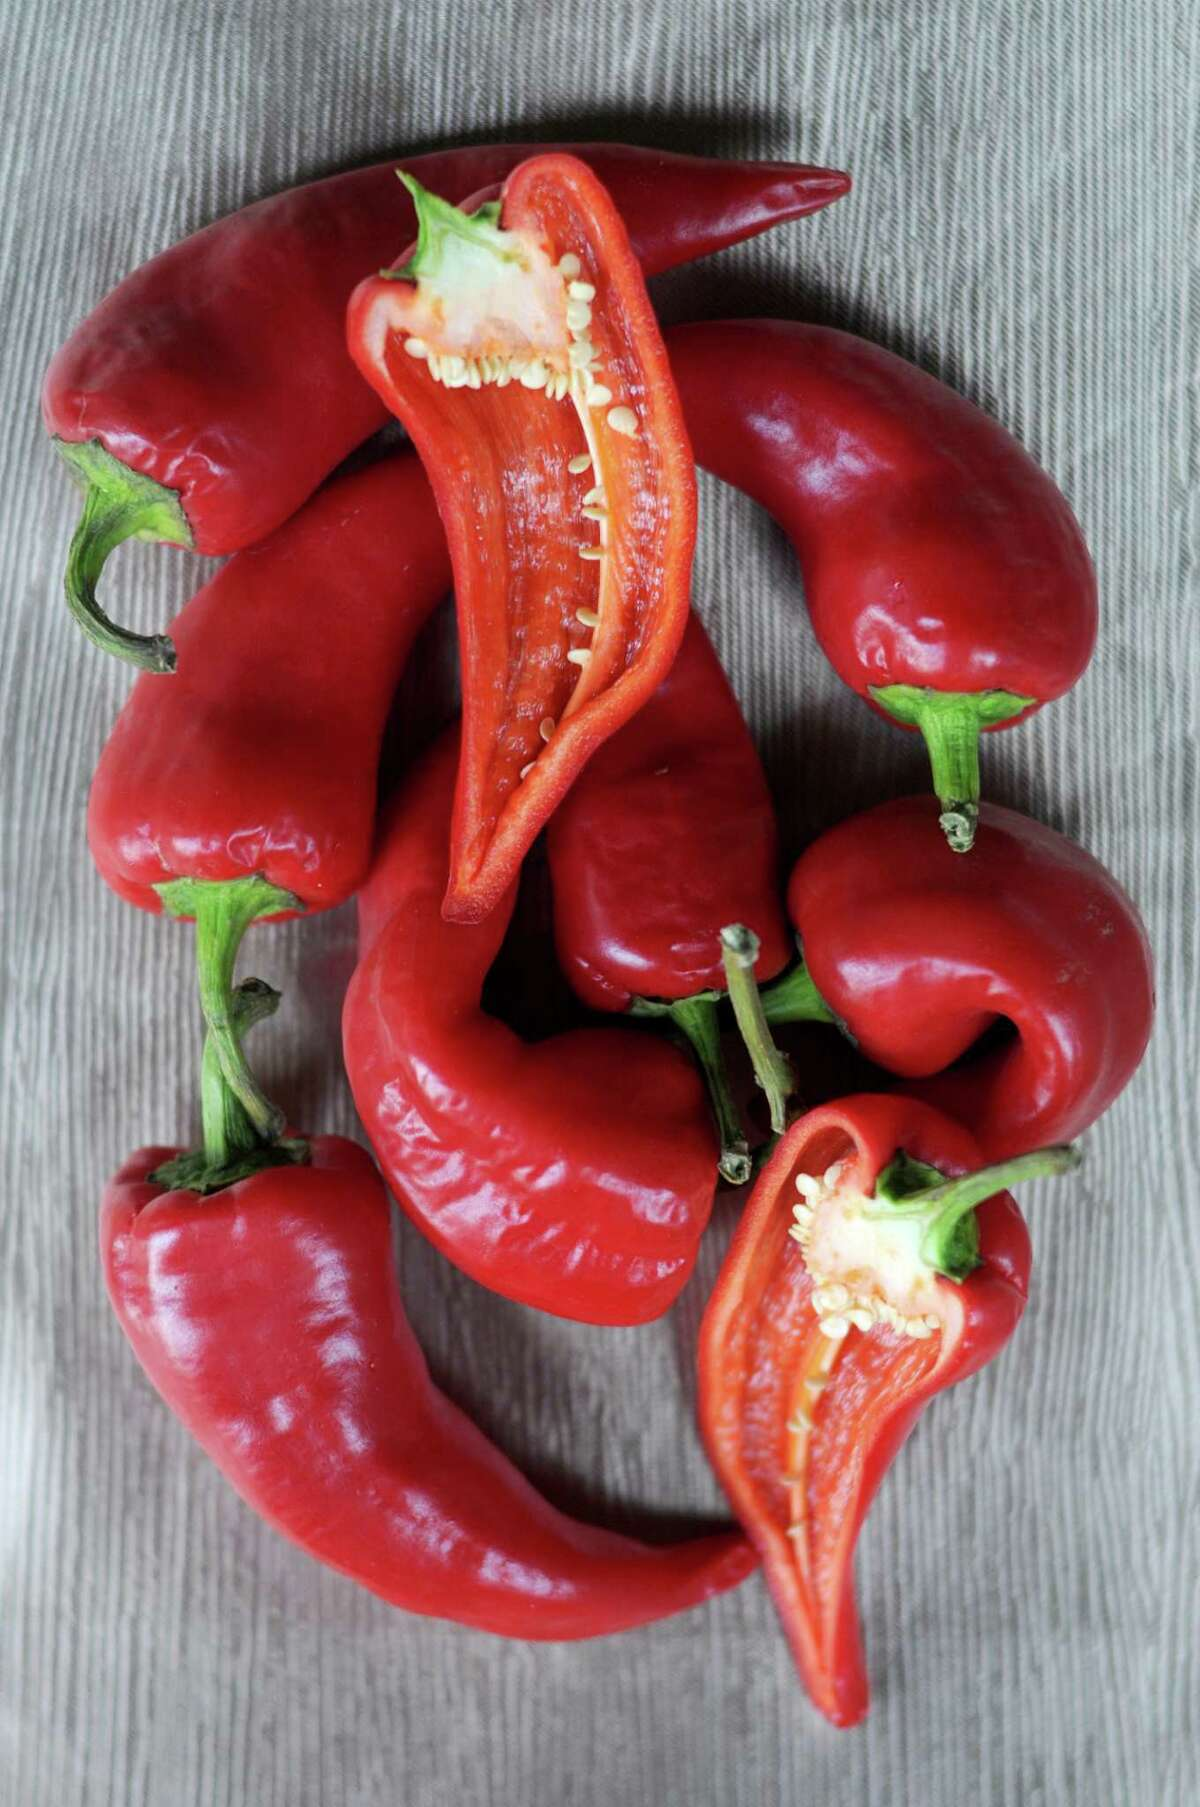 Fresno chiles, often mistaken for jalapenos, are fruity and sweet, with a mild smokiness that's ideal for sauces.